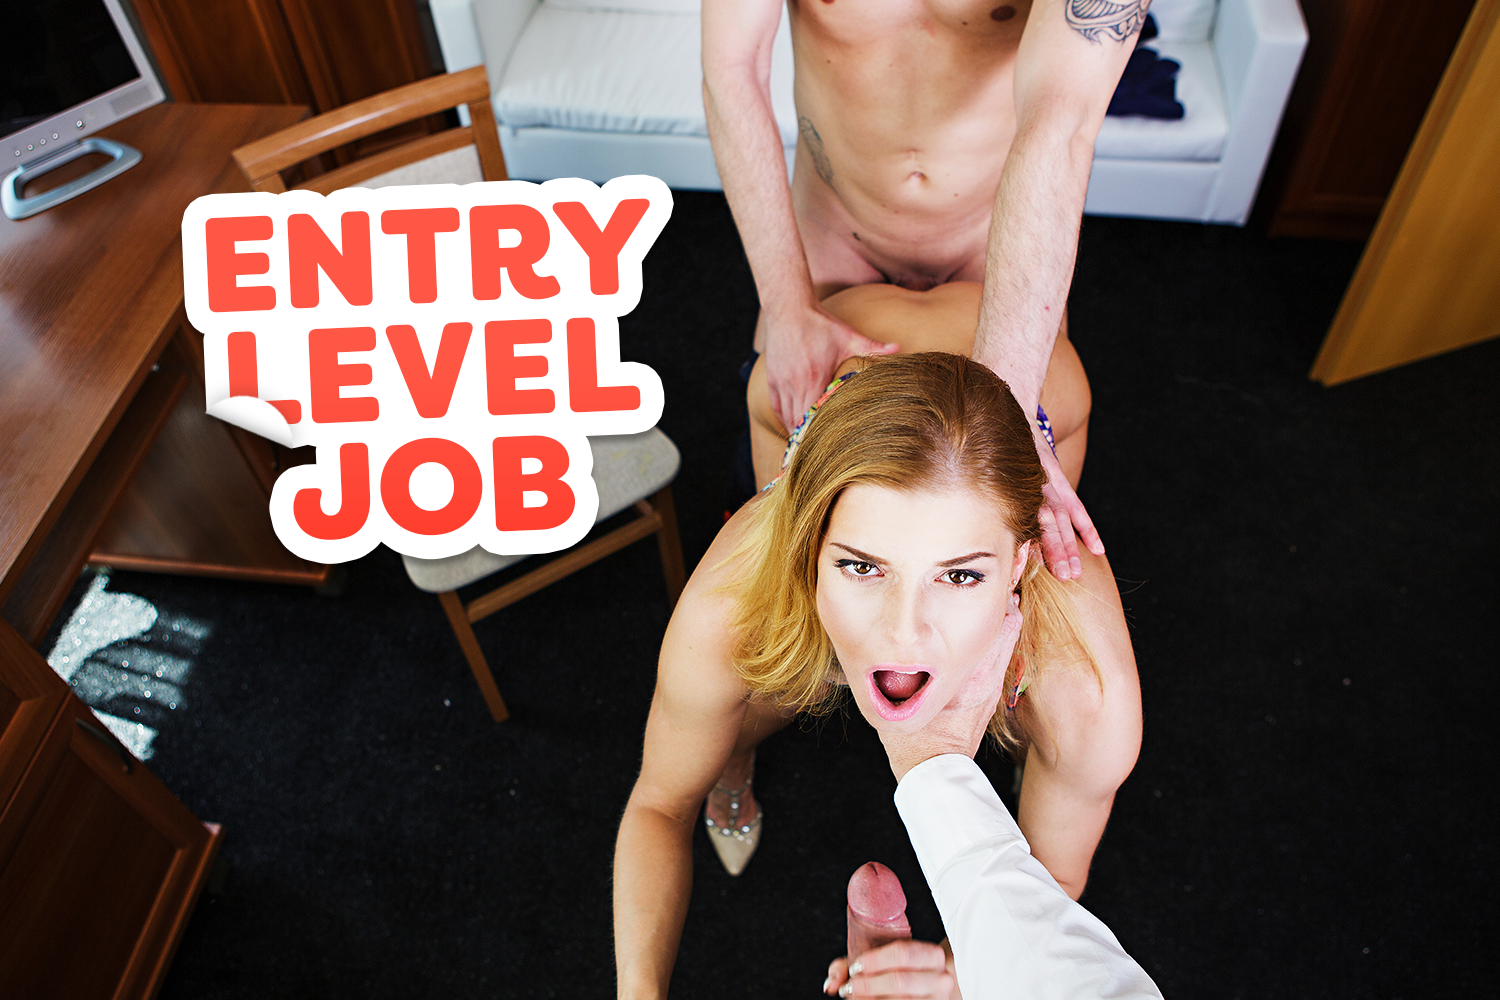 Entry Level Job VR Porn Video